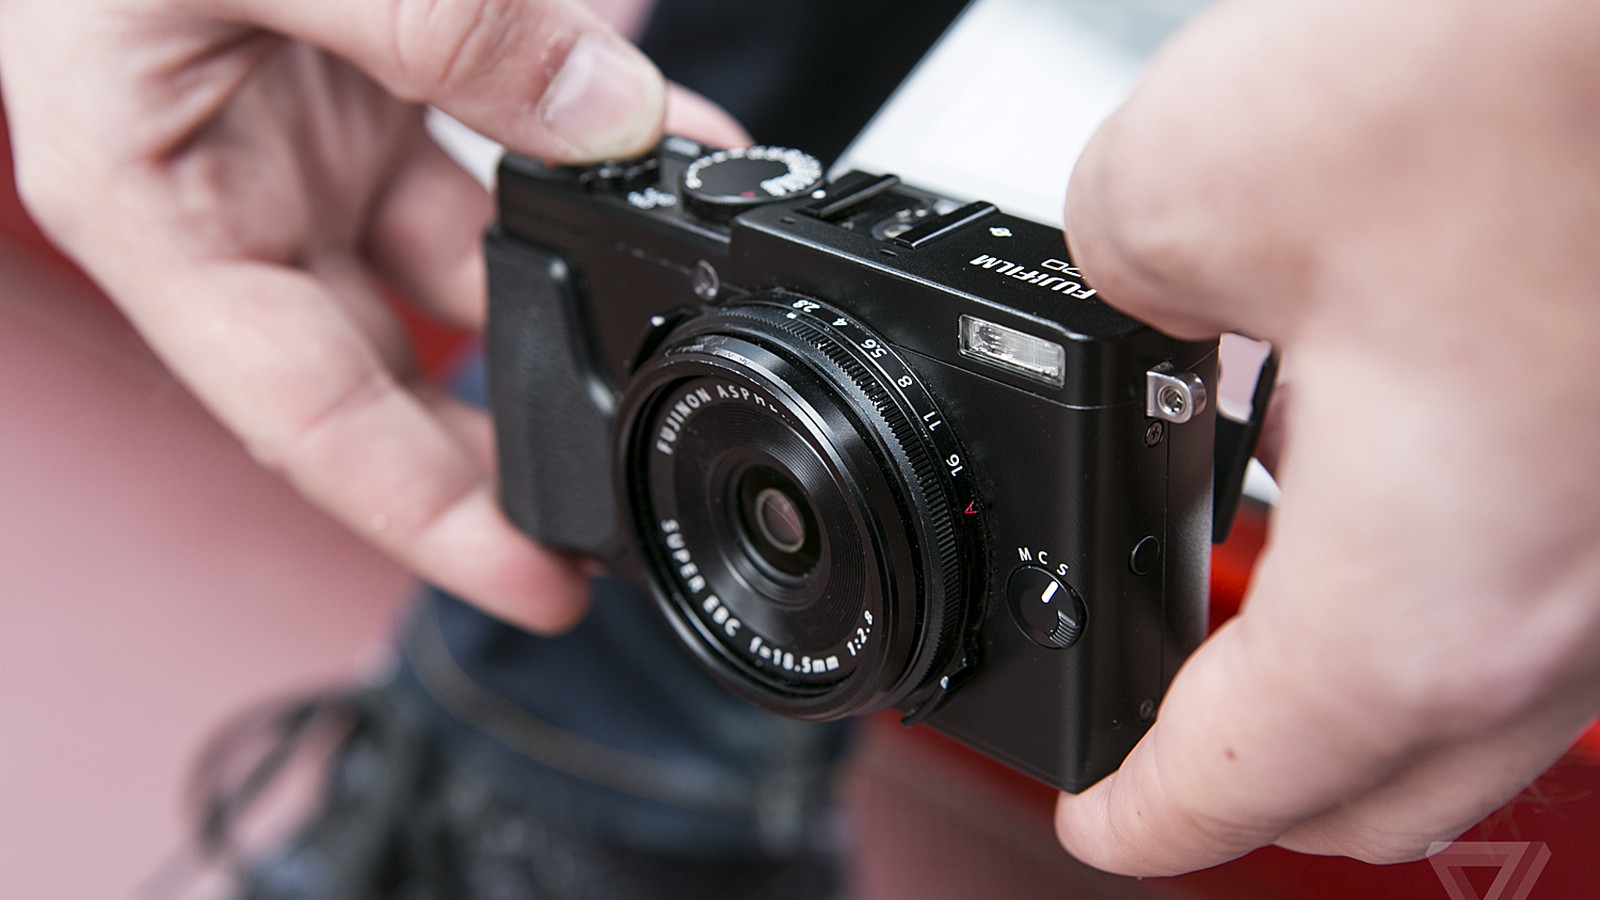 Fujifilm X70 review: the little camera that can | The Verge